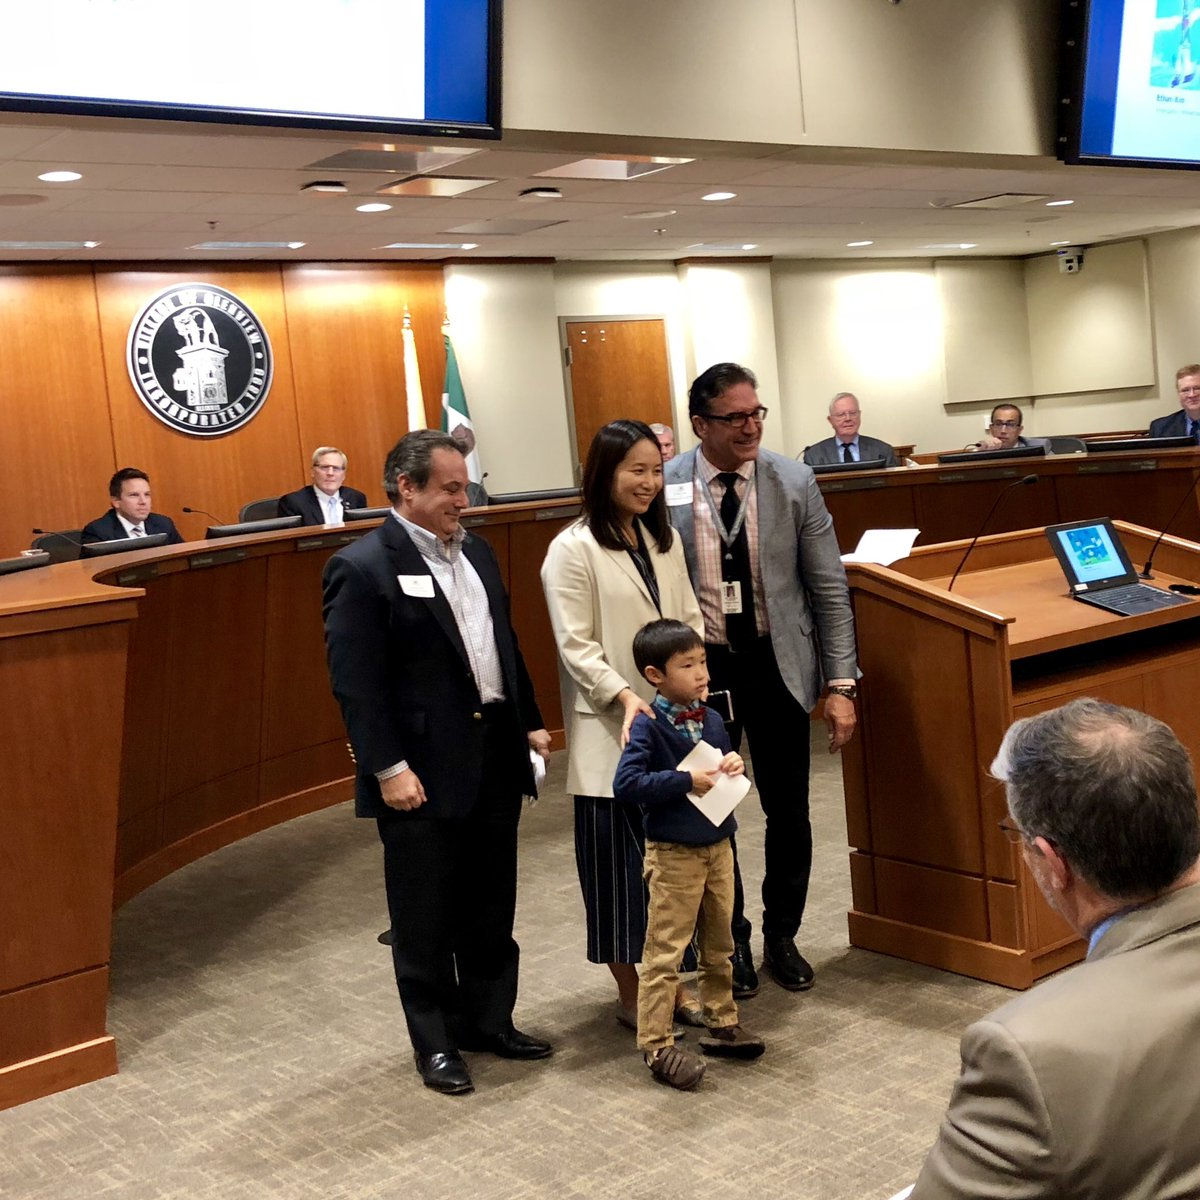 test Twitter Media - Congratulations to our Character Counts! poster contest winners. Ethan (K) and Naomi (4) were recognized alongside several WIllowbrook alumni at tonight's Village Board meeting. #d30learns #charactercounts https://t.co/jEzMByt3Pj